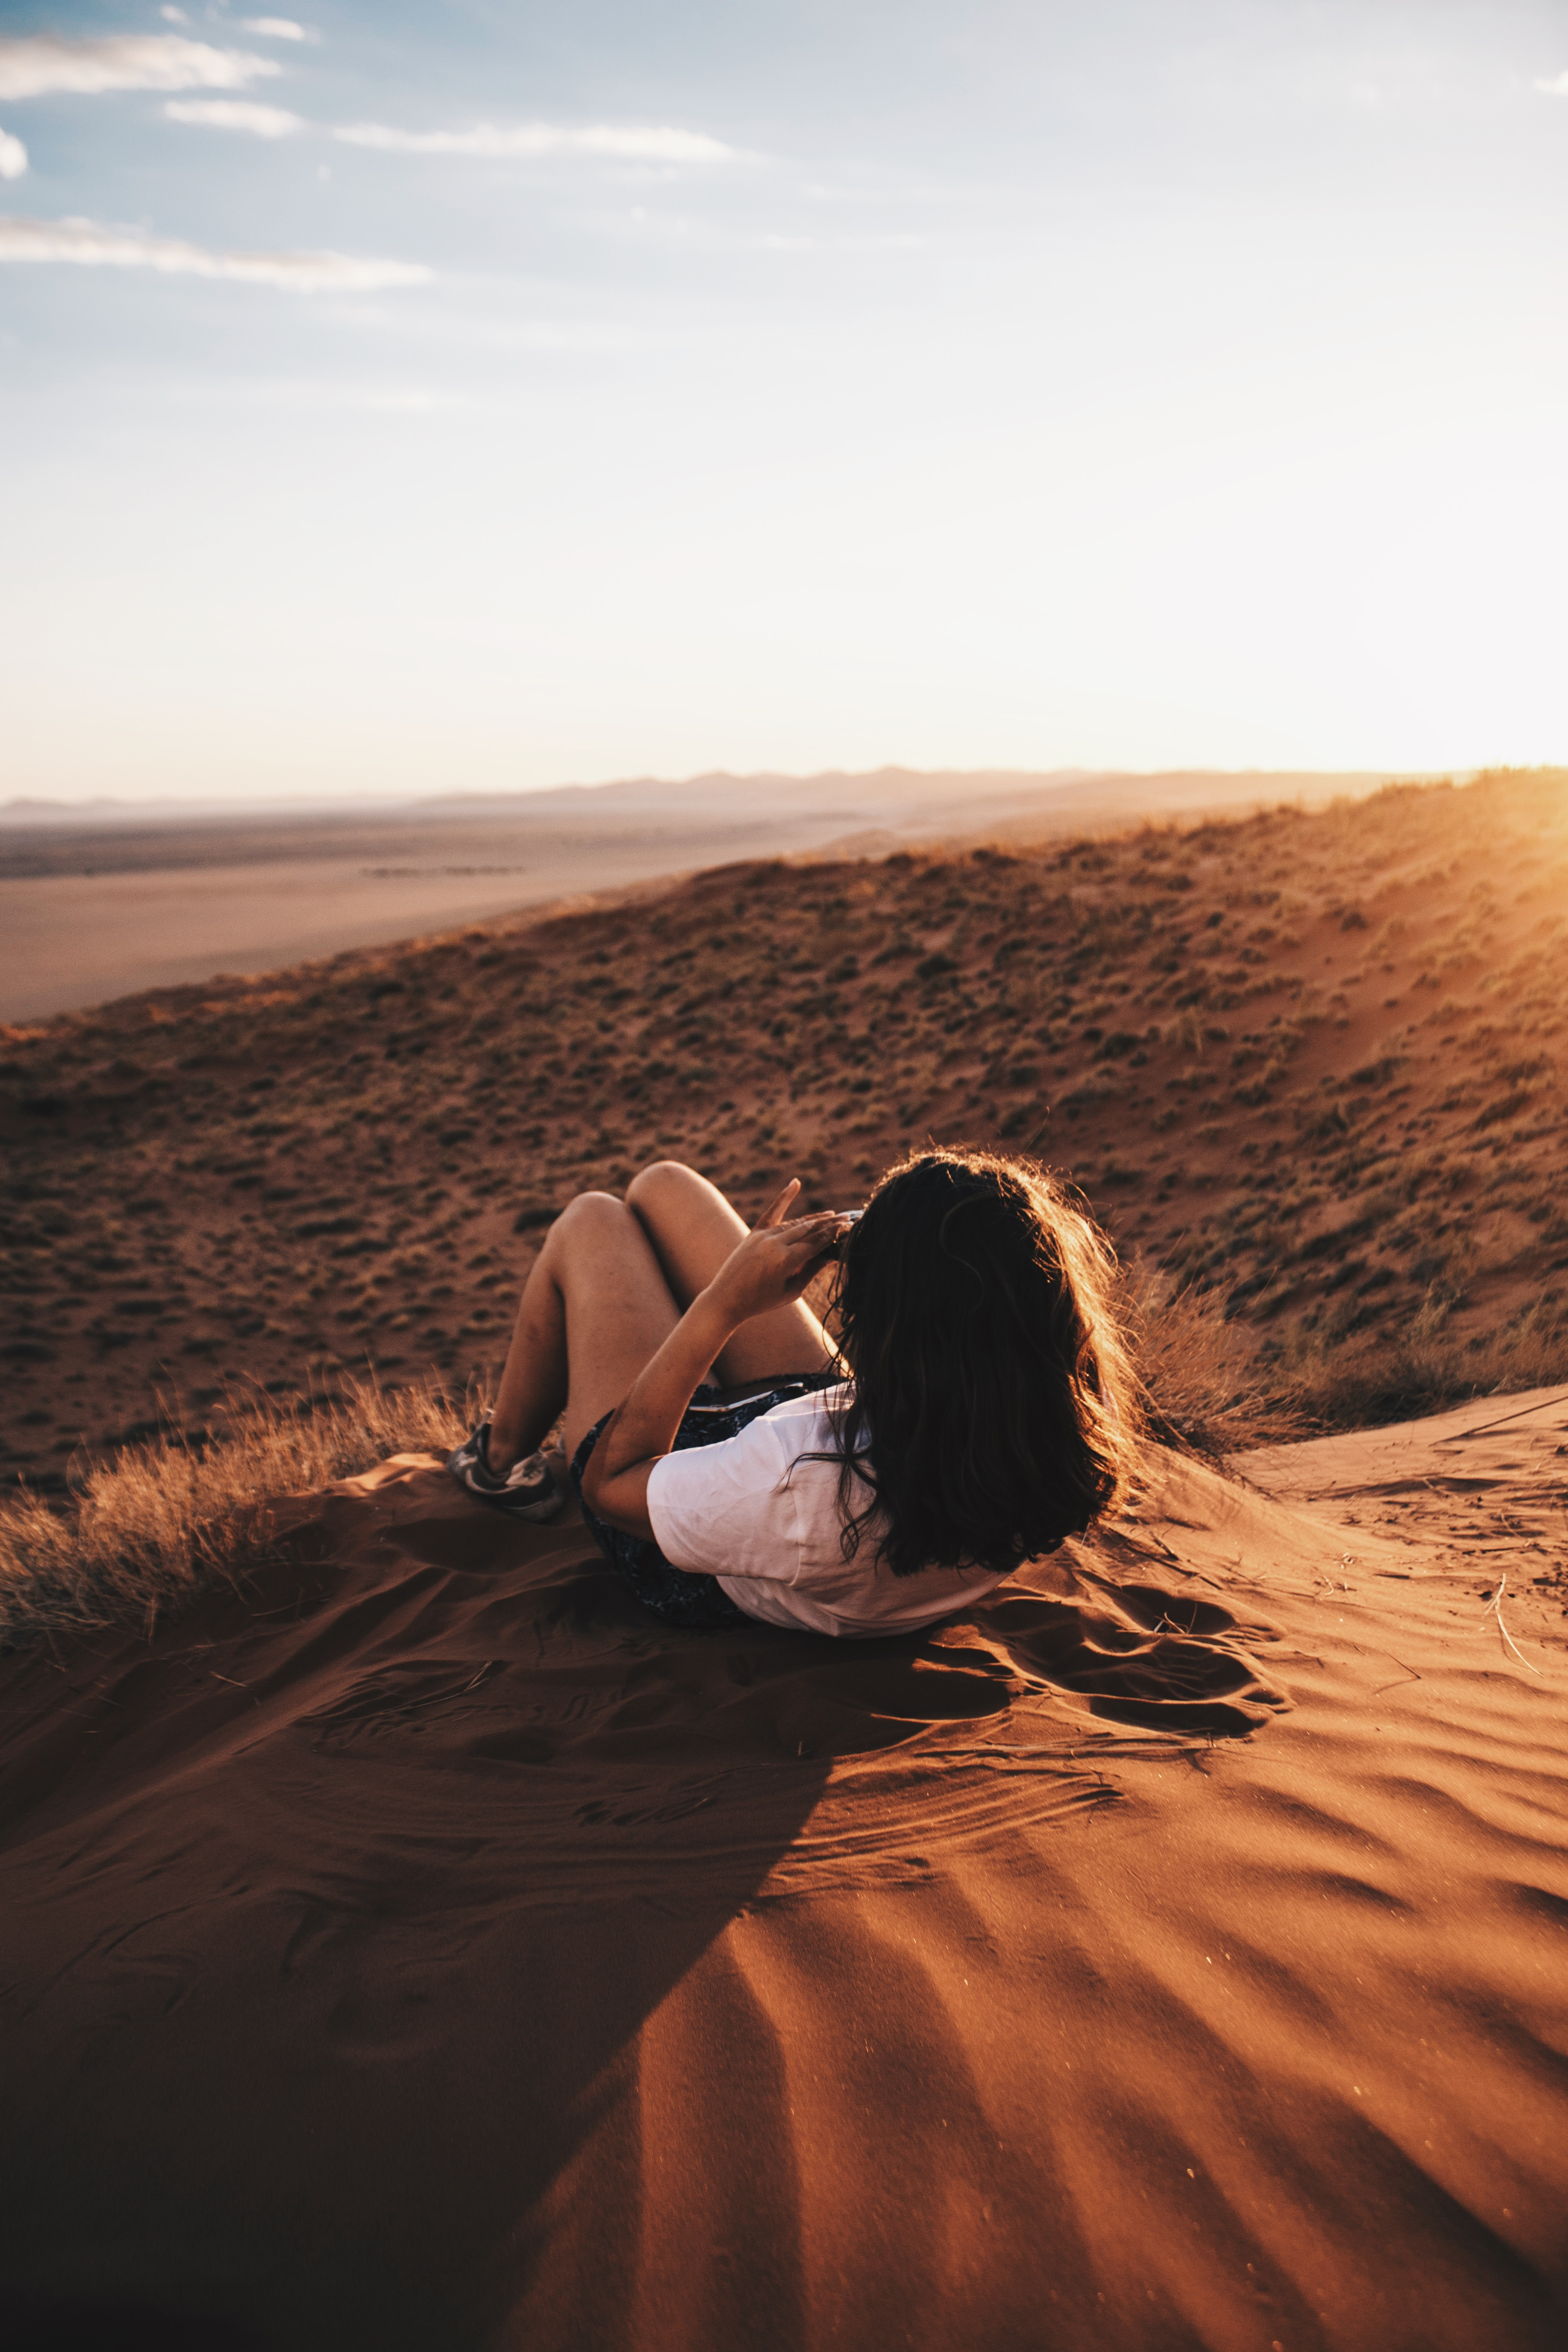 woman lying on sand during daytime